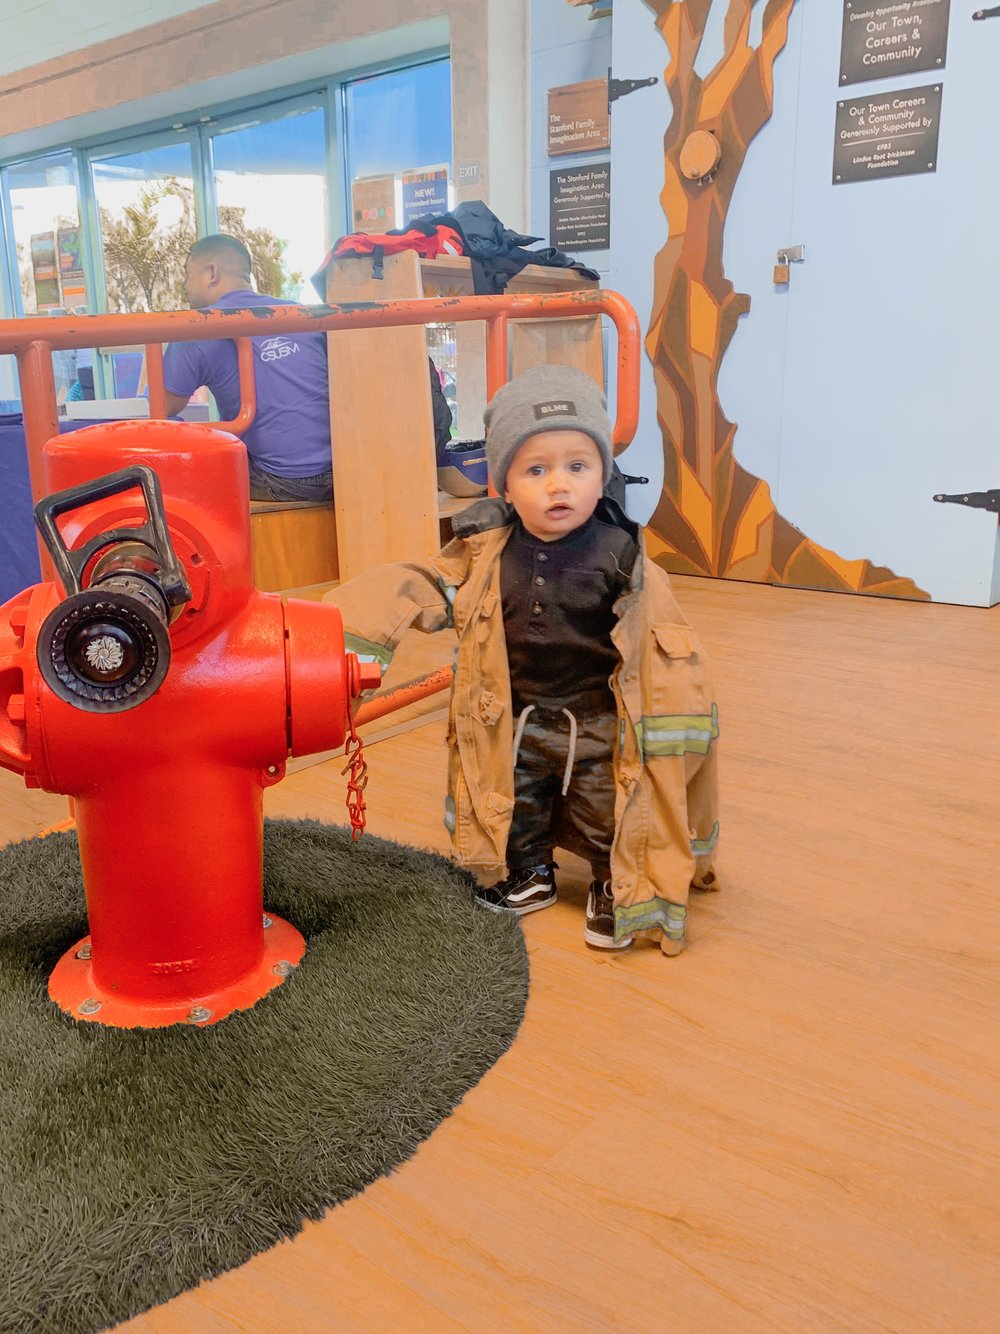 The San Diego Children's Discovery Museum- A recap of our day